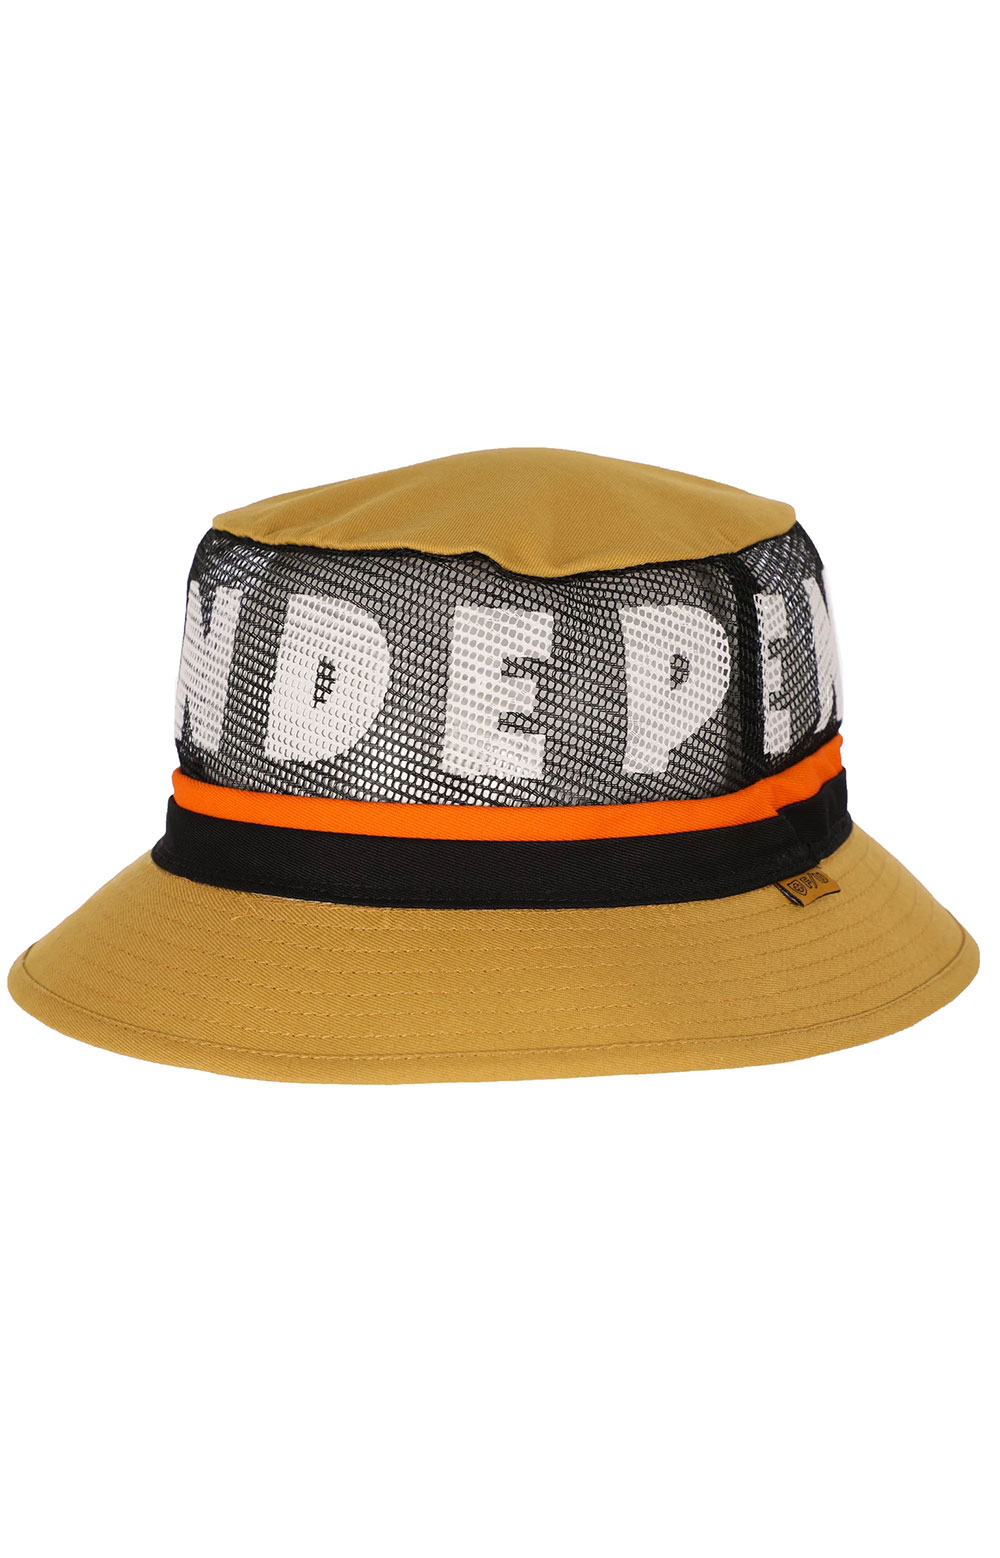 9d8f552f653e0e F/U Hardy Bucket Hat - Yellow. Loading... Home · Brands · Brixton x  Independent ...